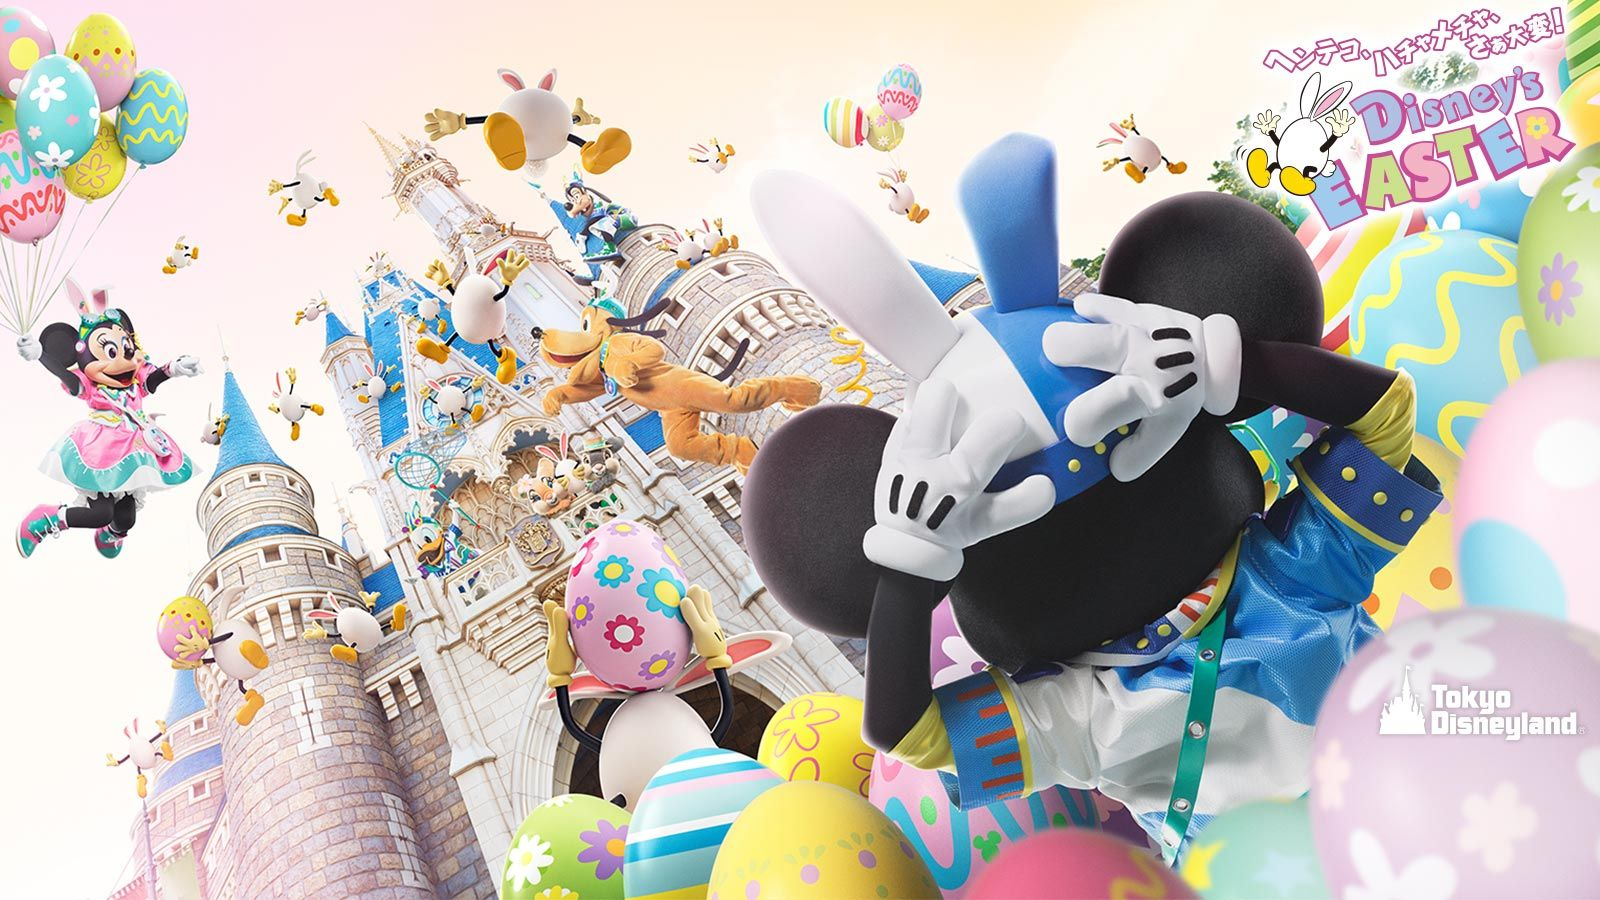 Welcome To The Kingdom Of Dreams And Magic Tokyo Disneyland With Its Seven Themed Lands Offers Fun Attractions And Fantastic E ディズニーランド ディズニーテーマパーク 東京ディズニーランド